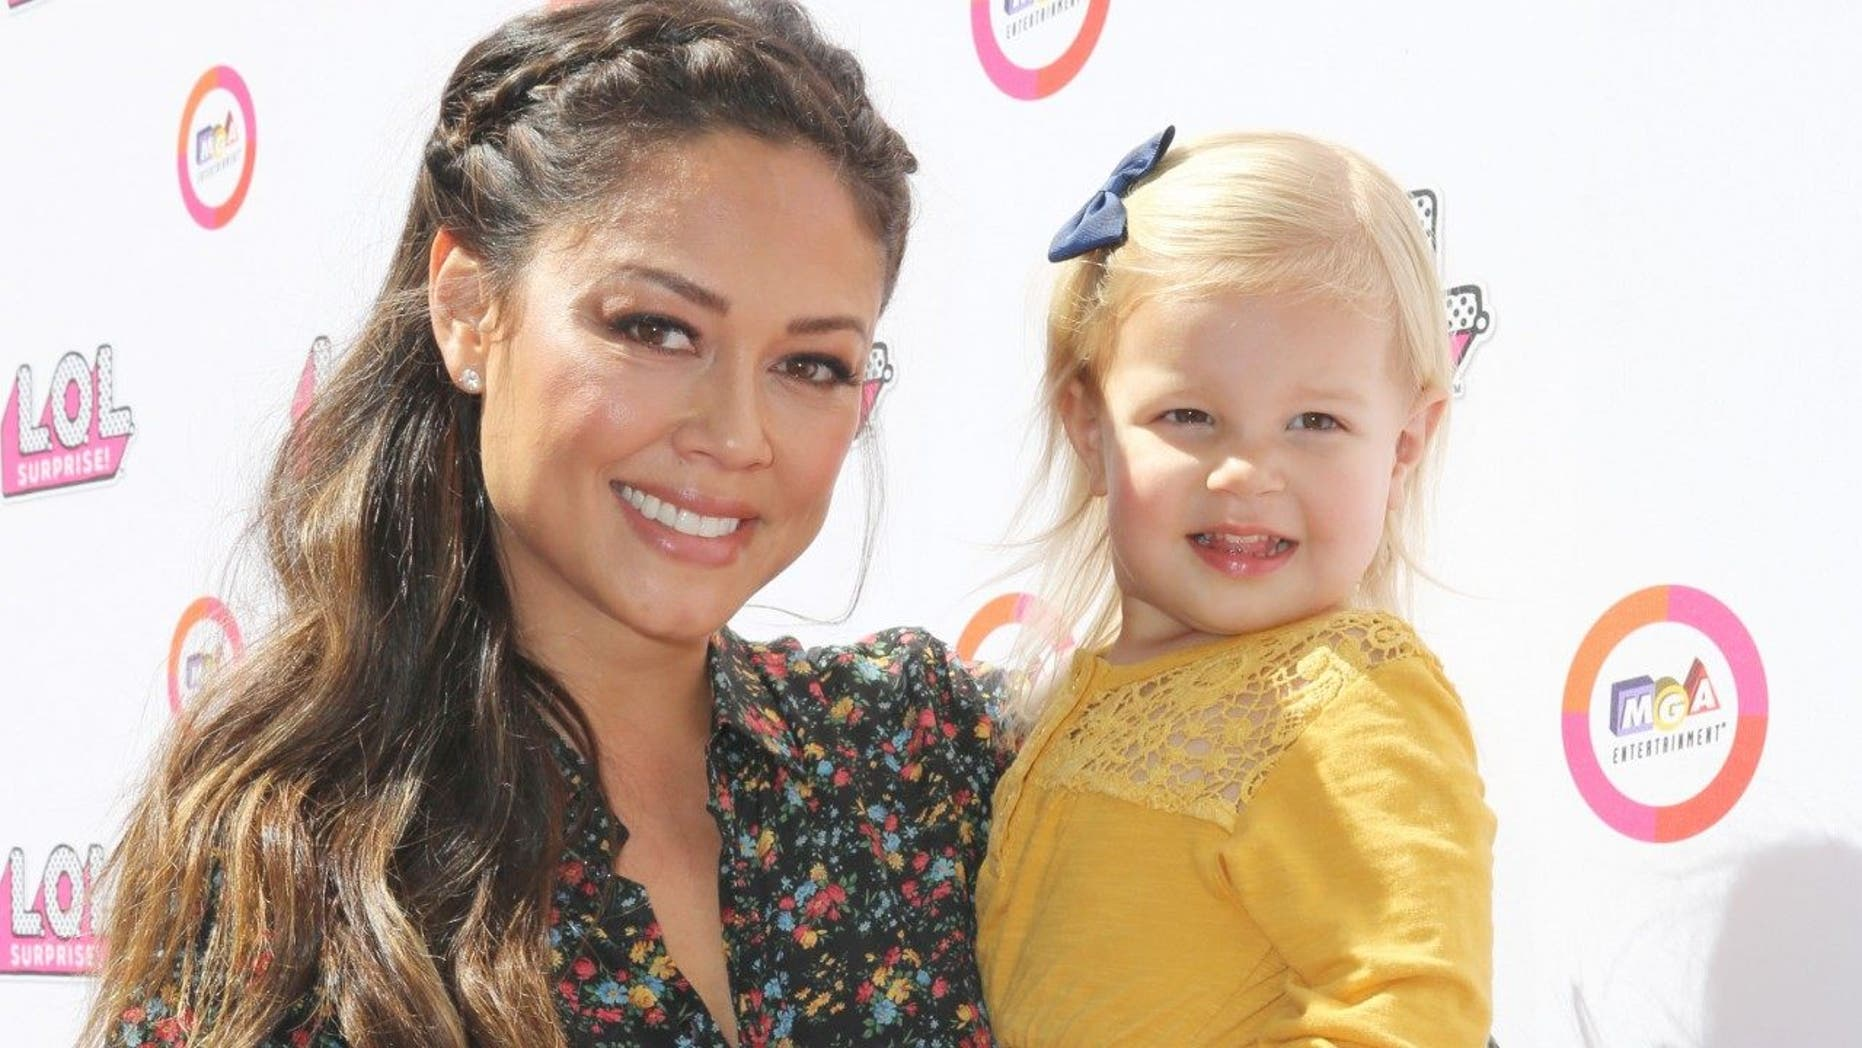 Vanessa Lachey responded to a tweet that said her 3-year-old daughter, Brooklyn, with husband Nick Lachey looks like his ex-wife, Jessica Simpson.